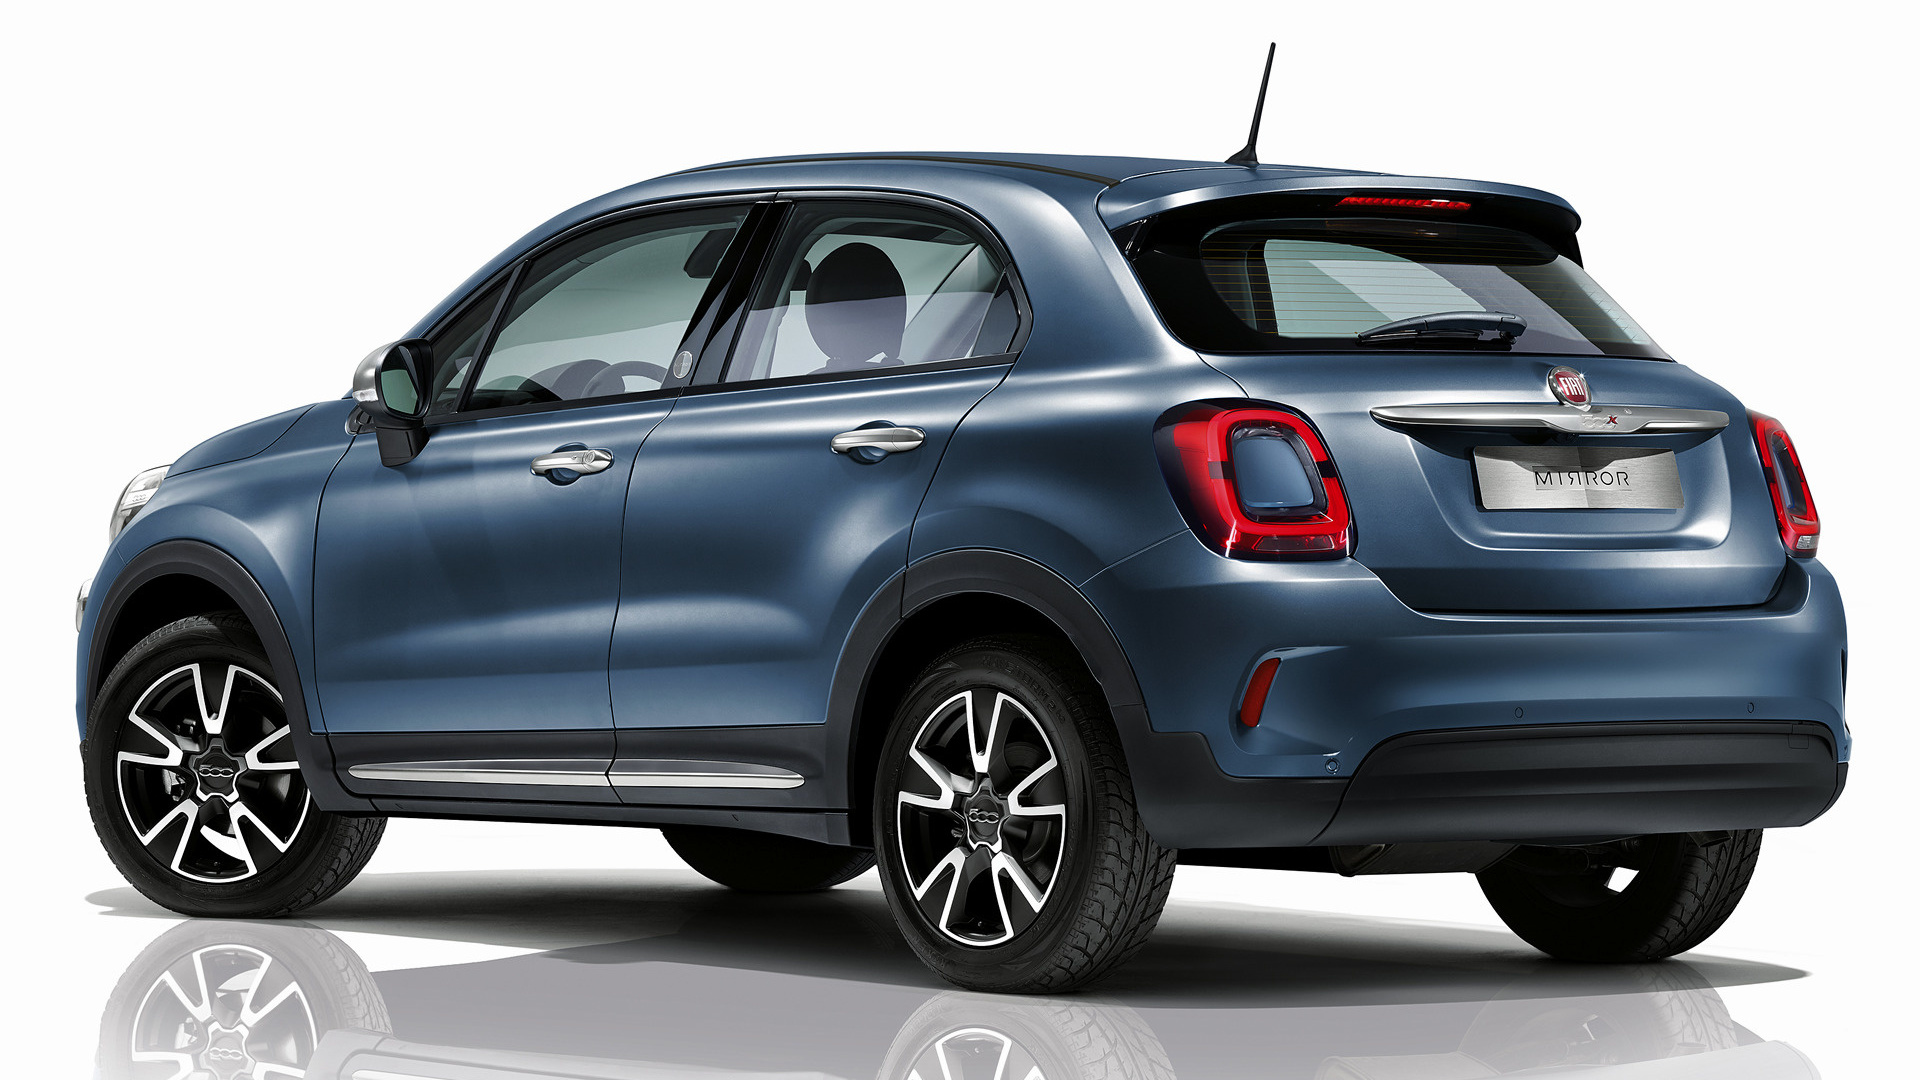 2019 fiat 500x mirror wallpapers and hd images car pixel. Black Bedroom Furniture Sets. Home Design Ideas